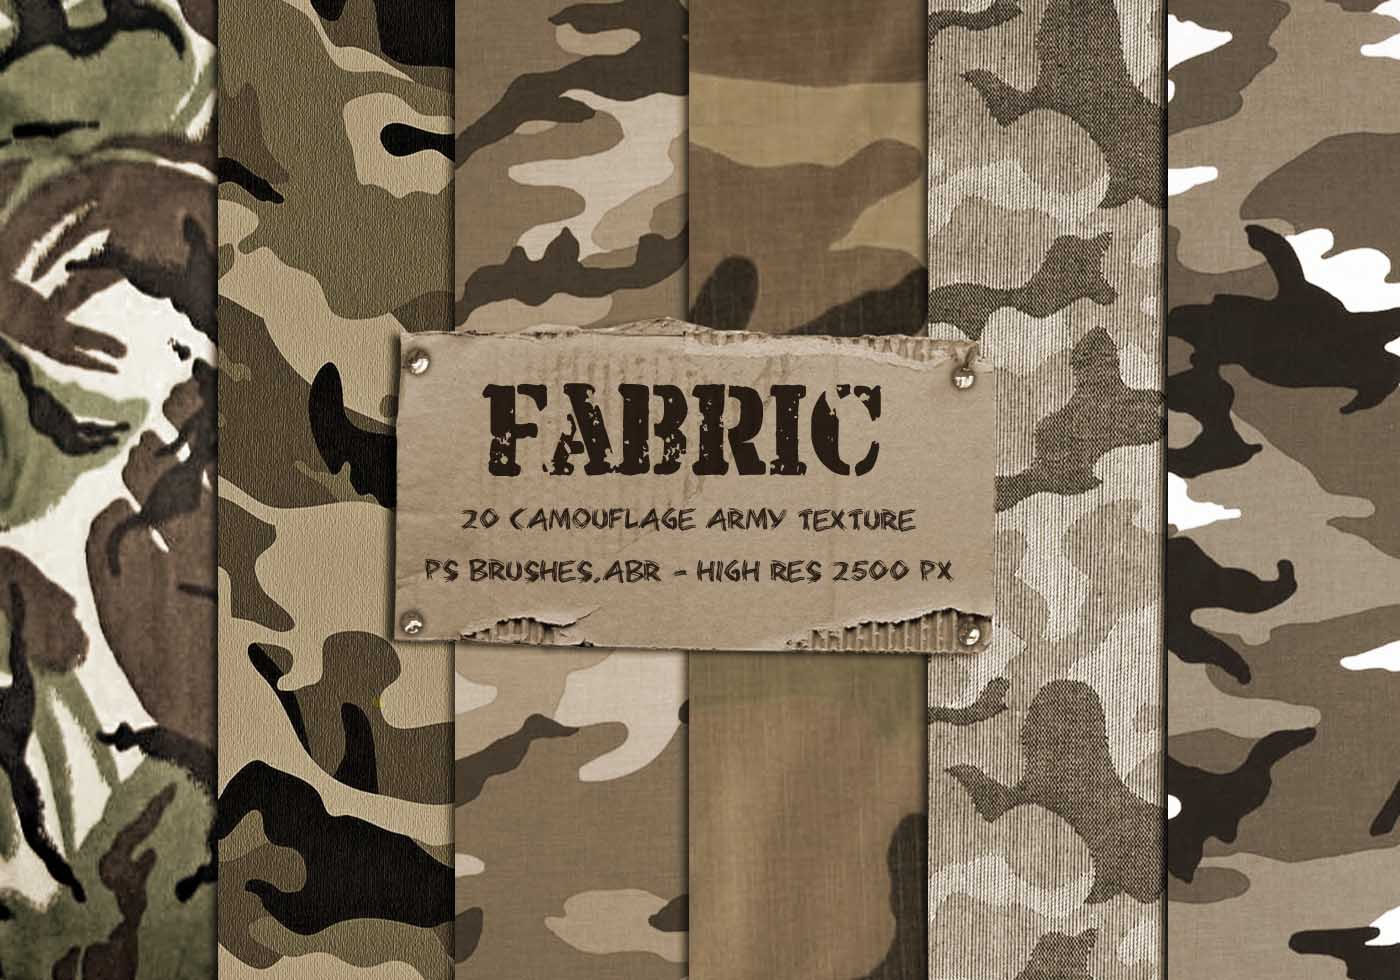 20 Camouflage Fabric Texture Ps Brushes Free Photoshop